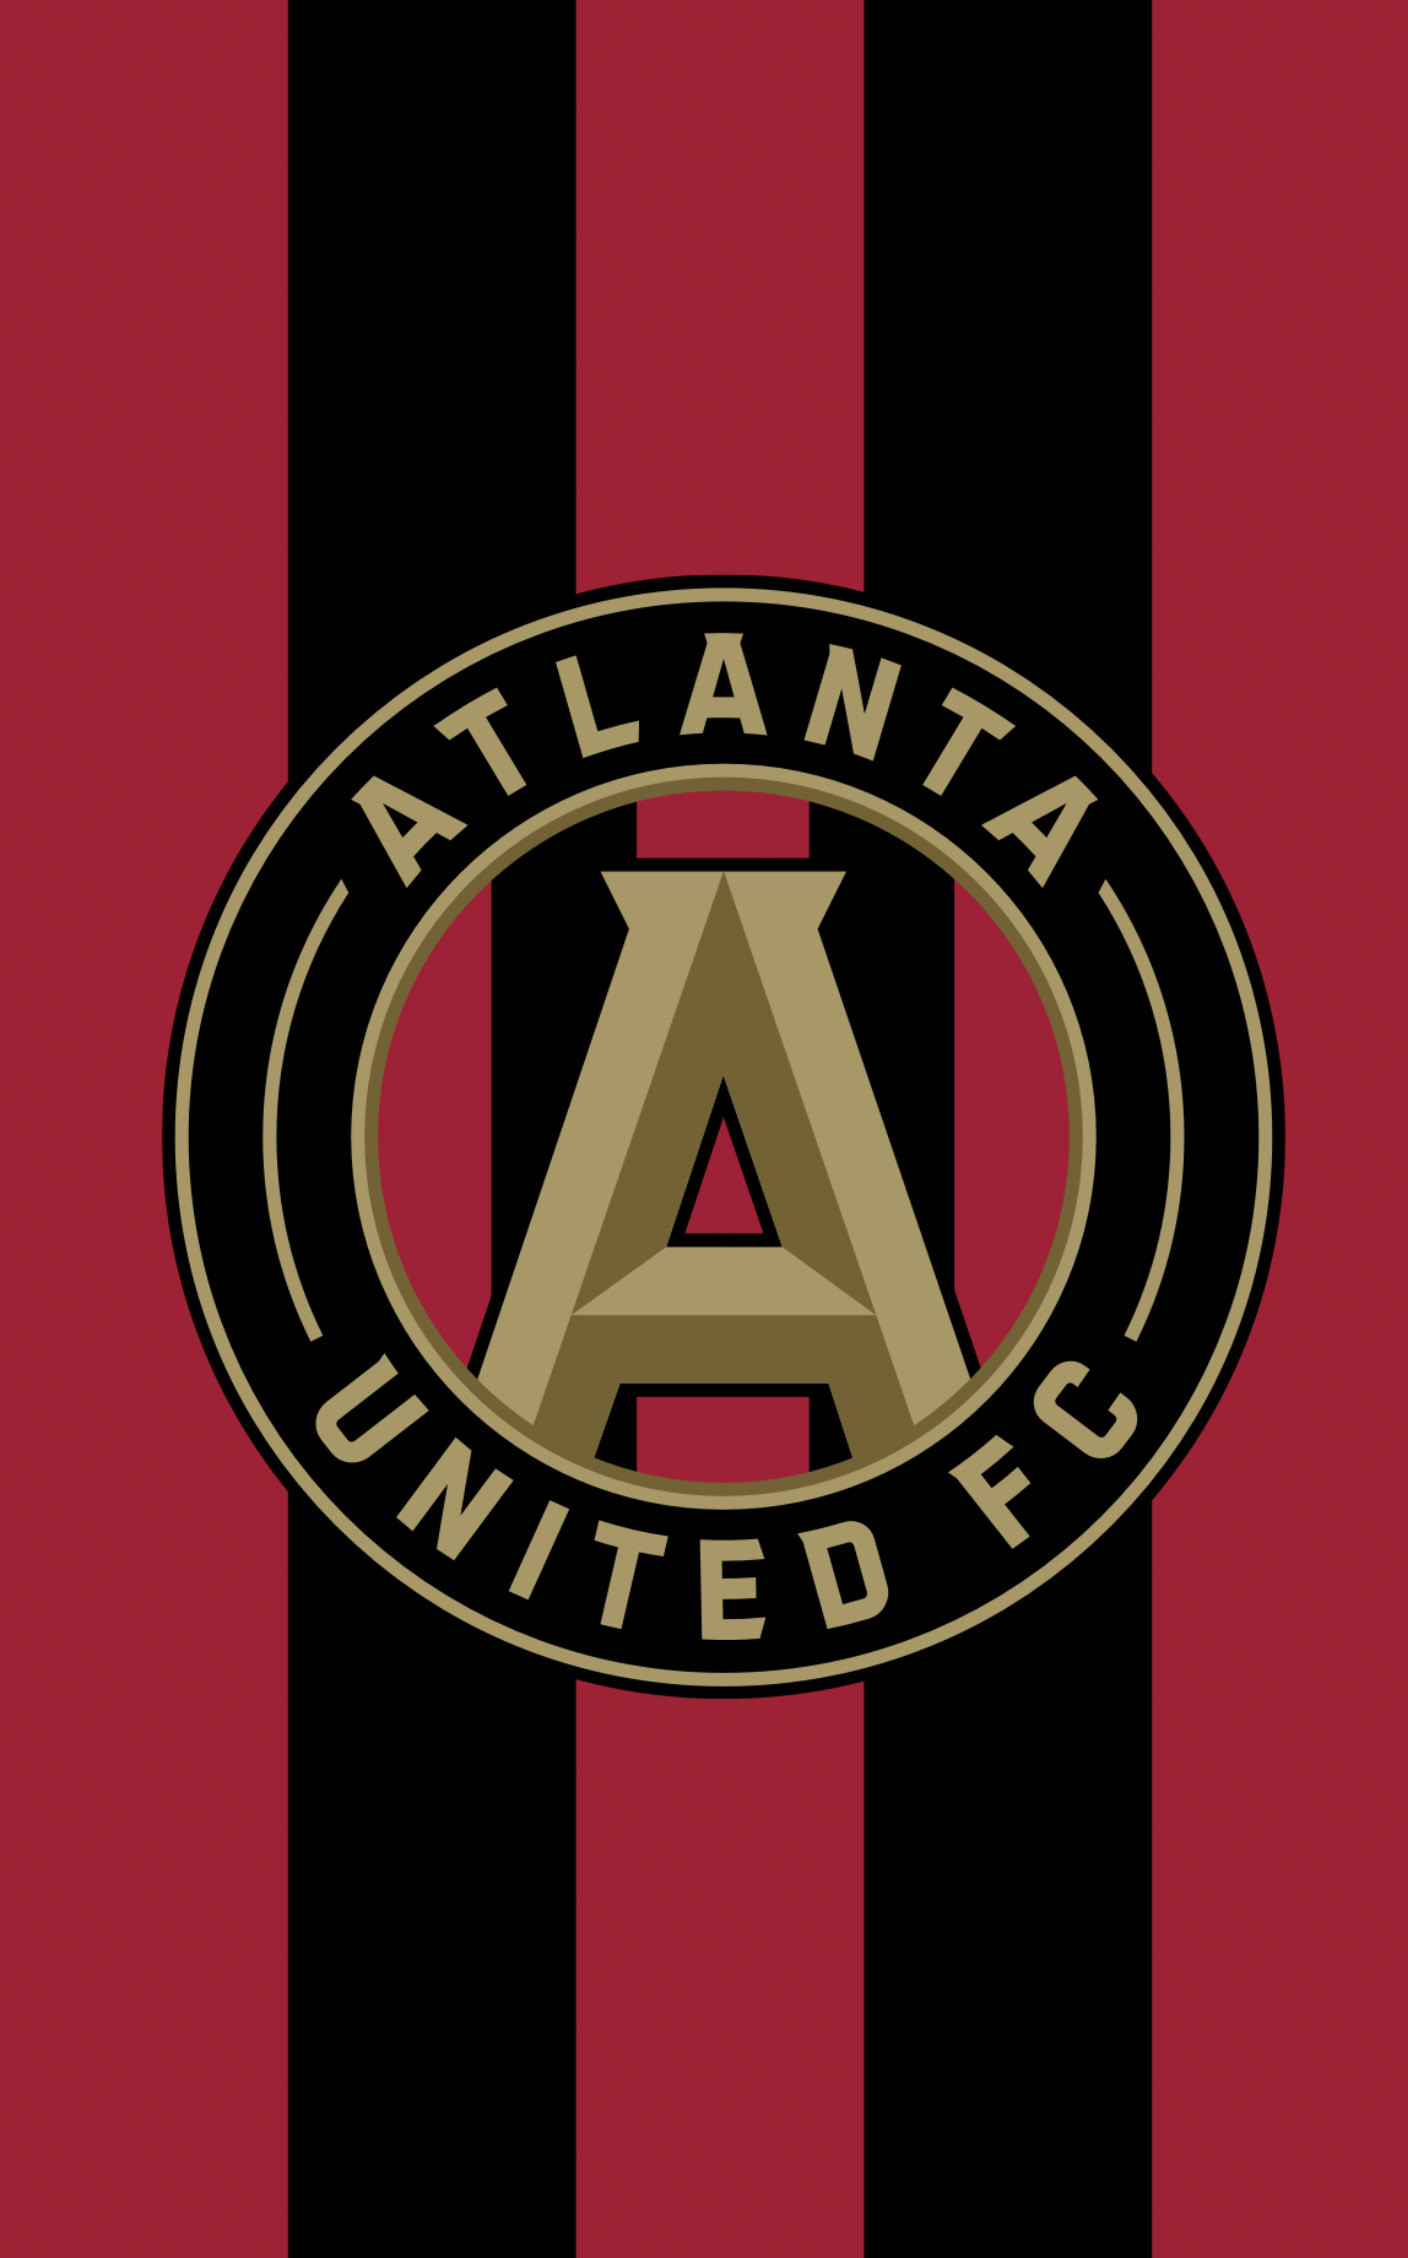 Atlanta United Fc Iphone Wallpaper Us Soccer Iphone Wallpaper 69 Images